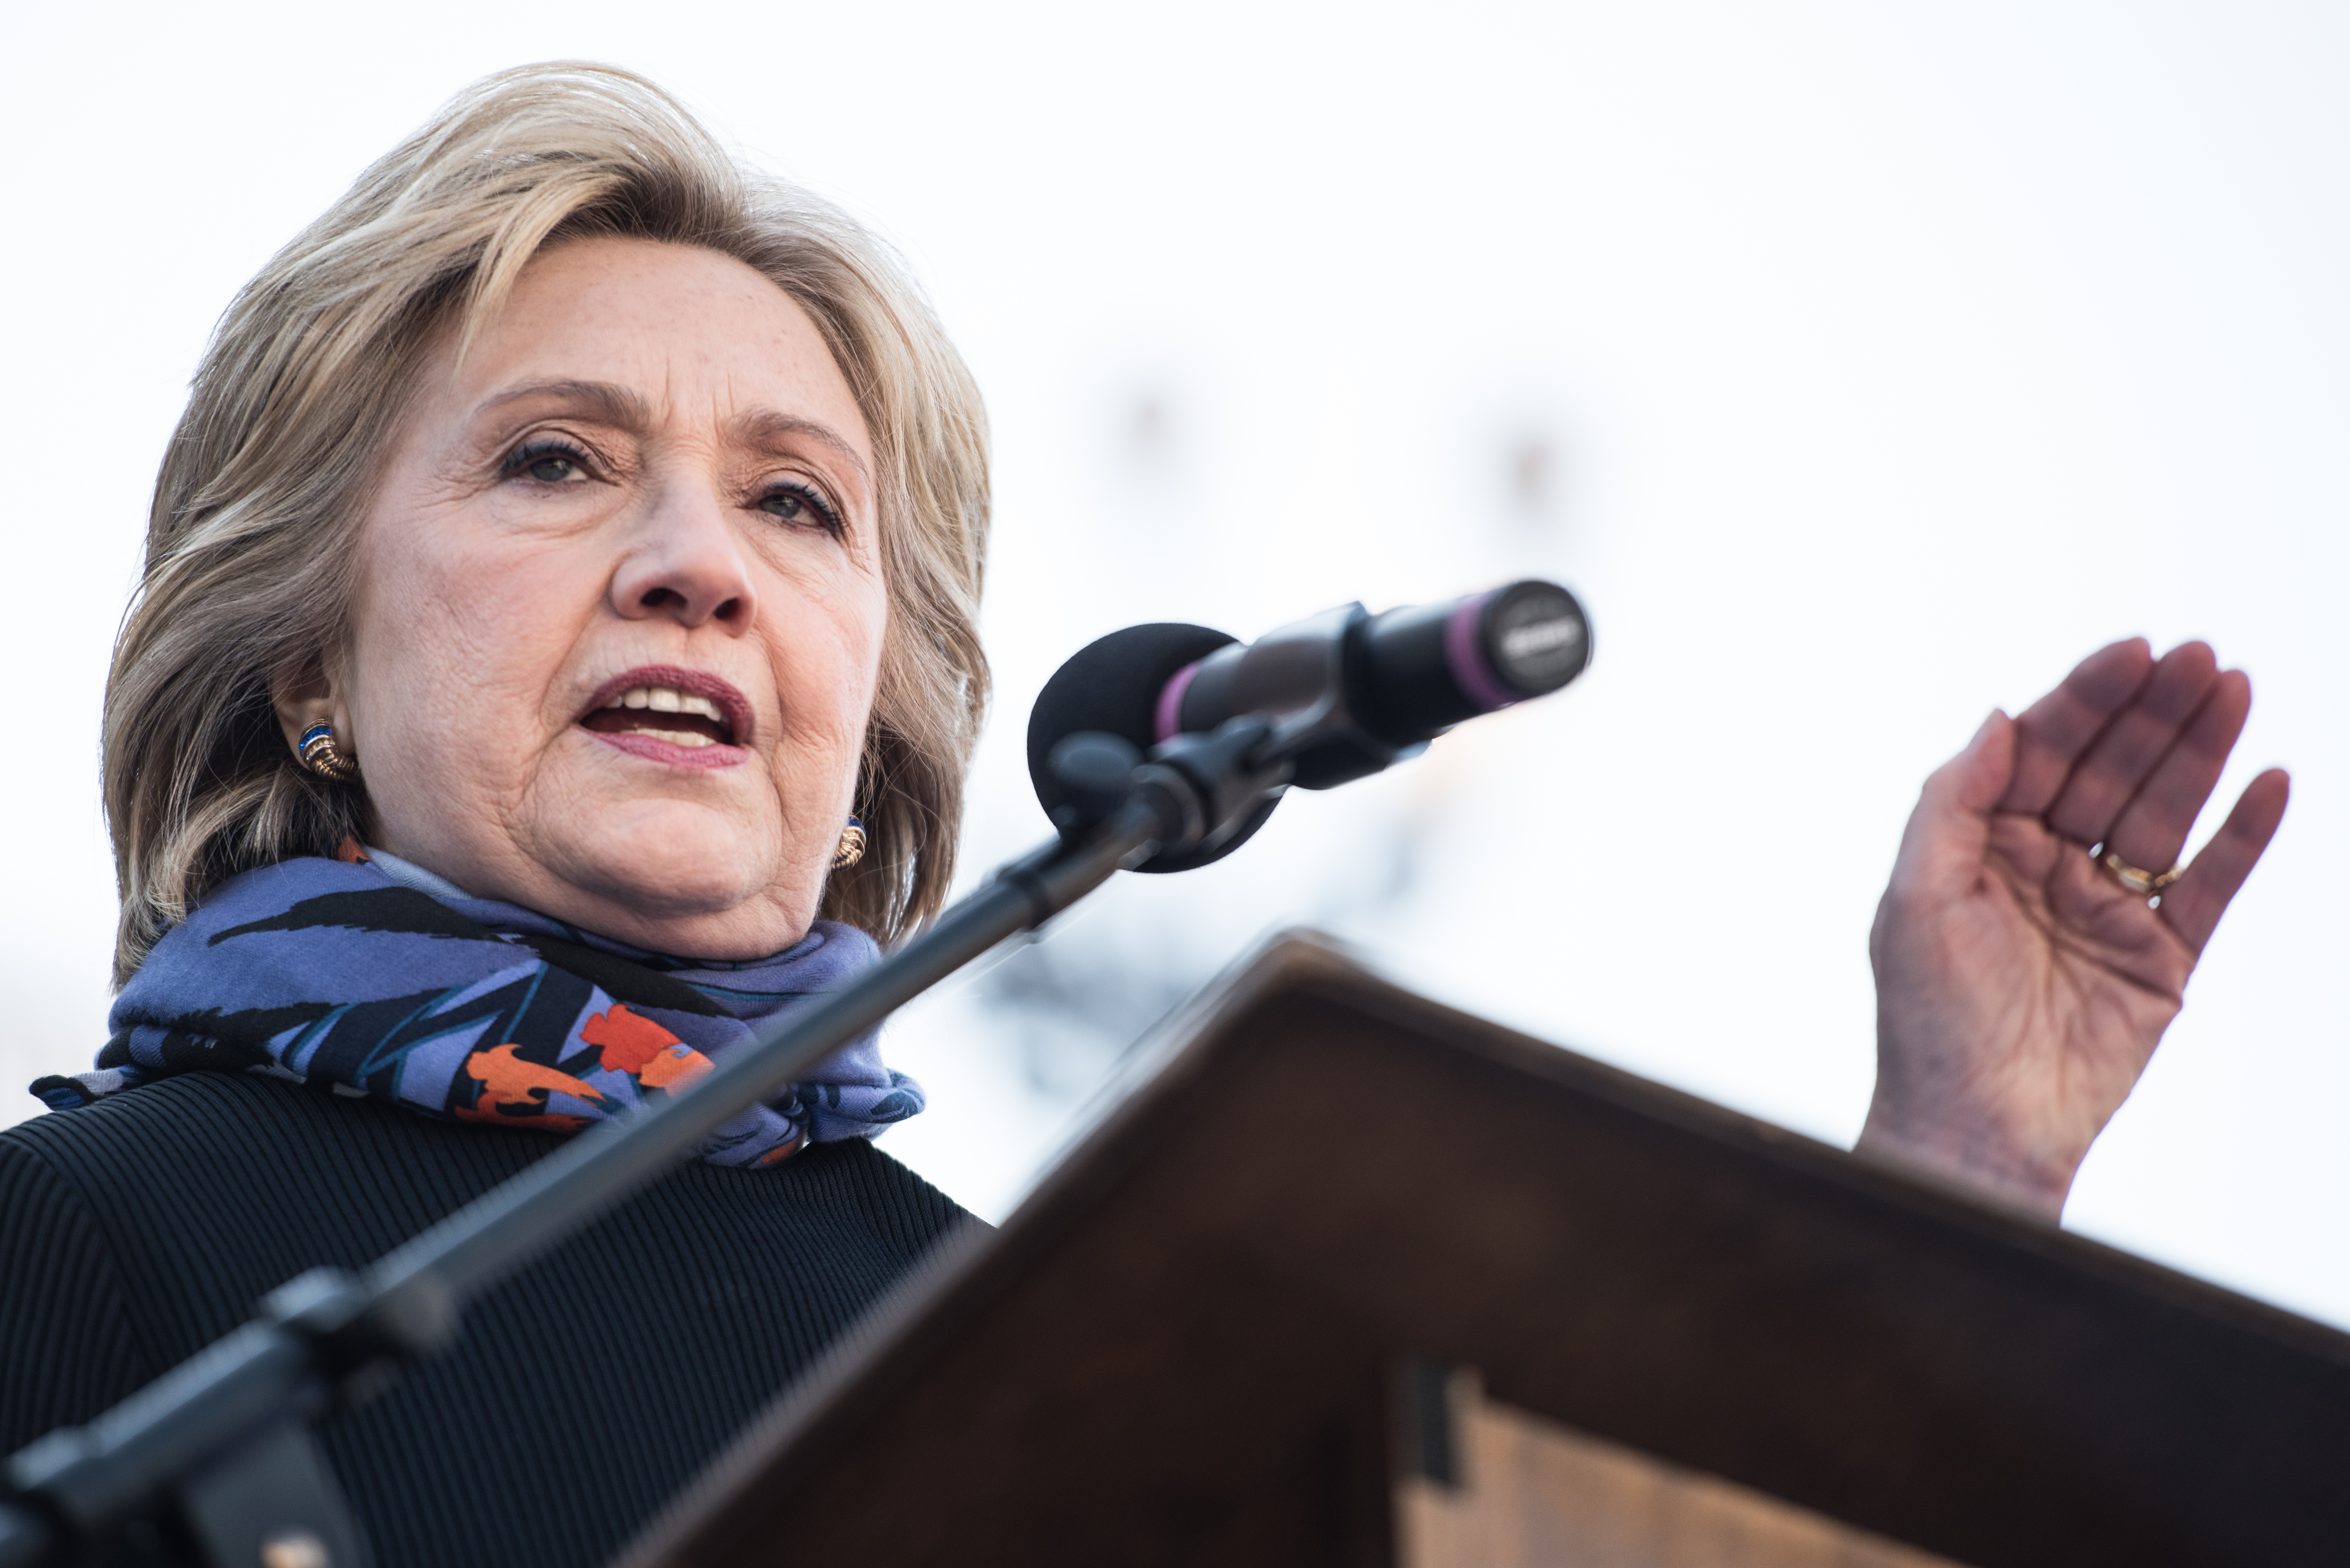 Hillary Clinton's odd new Sanders attack shows the Democrats are a mess on foreign policy